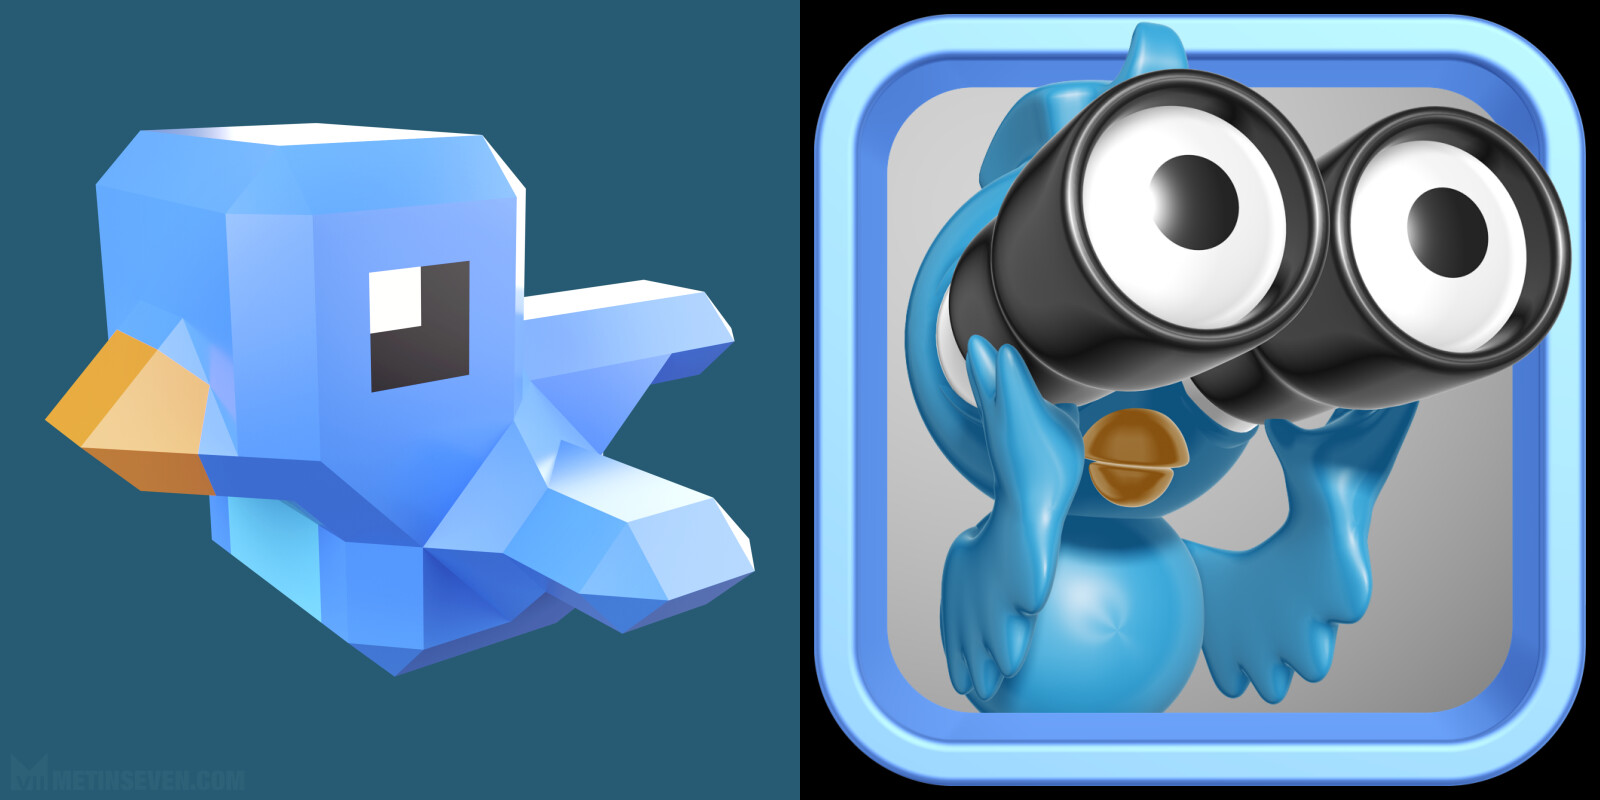 Twitter bird app icon designs in different 3D styles